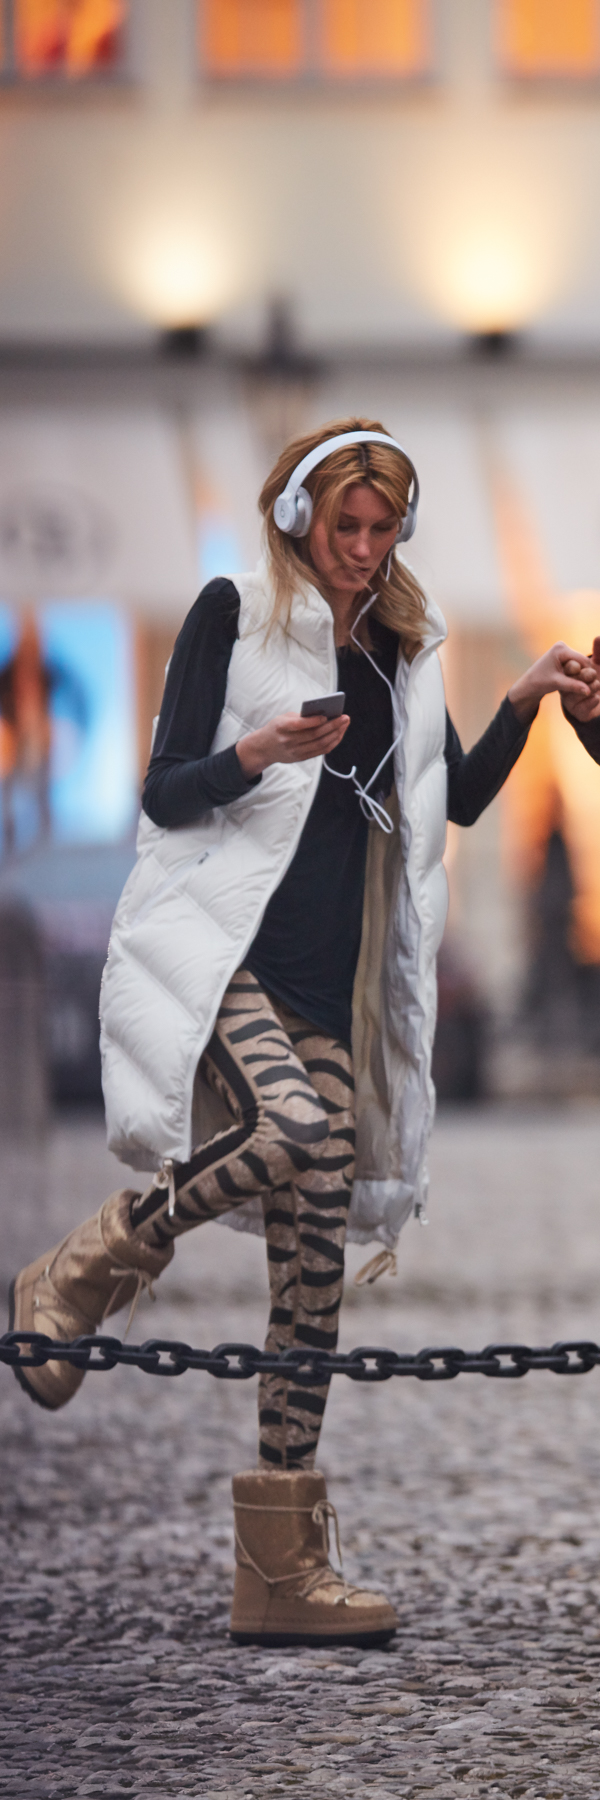 Glamour on the go is not an oxymoron: the new athleisure collection from Bogner Sport is elegant enough to wear to the club and comfortable and functional enough to wear to the gym. Glittering gold, tiger-striped leggings are just the start. Just throw on this luxurious long down vest and get on your way!